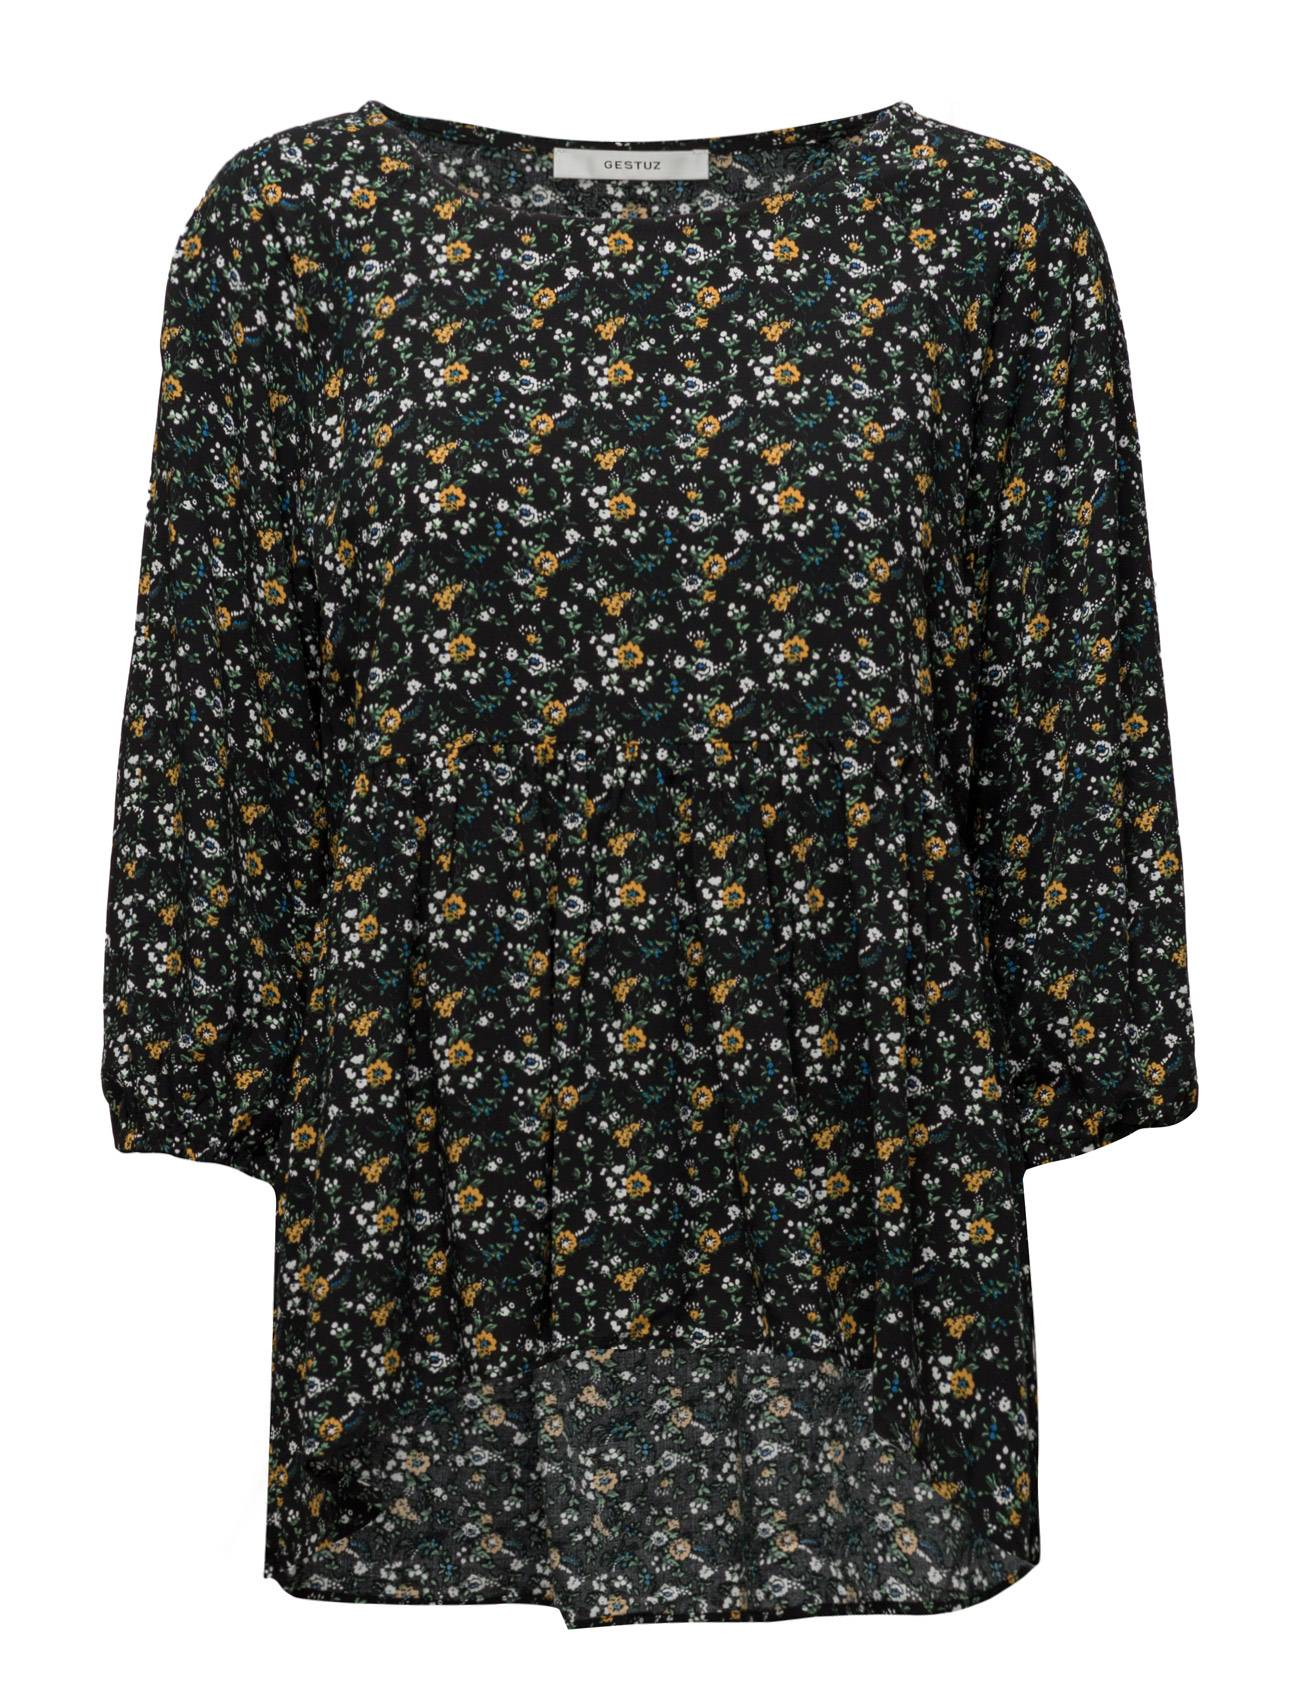 Gestuz Bloom Blouse Hs17